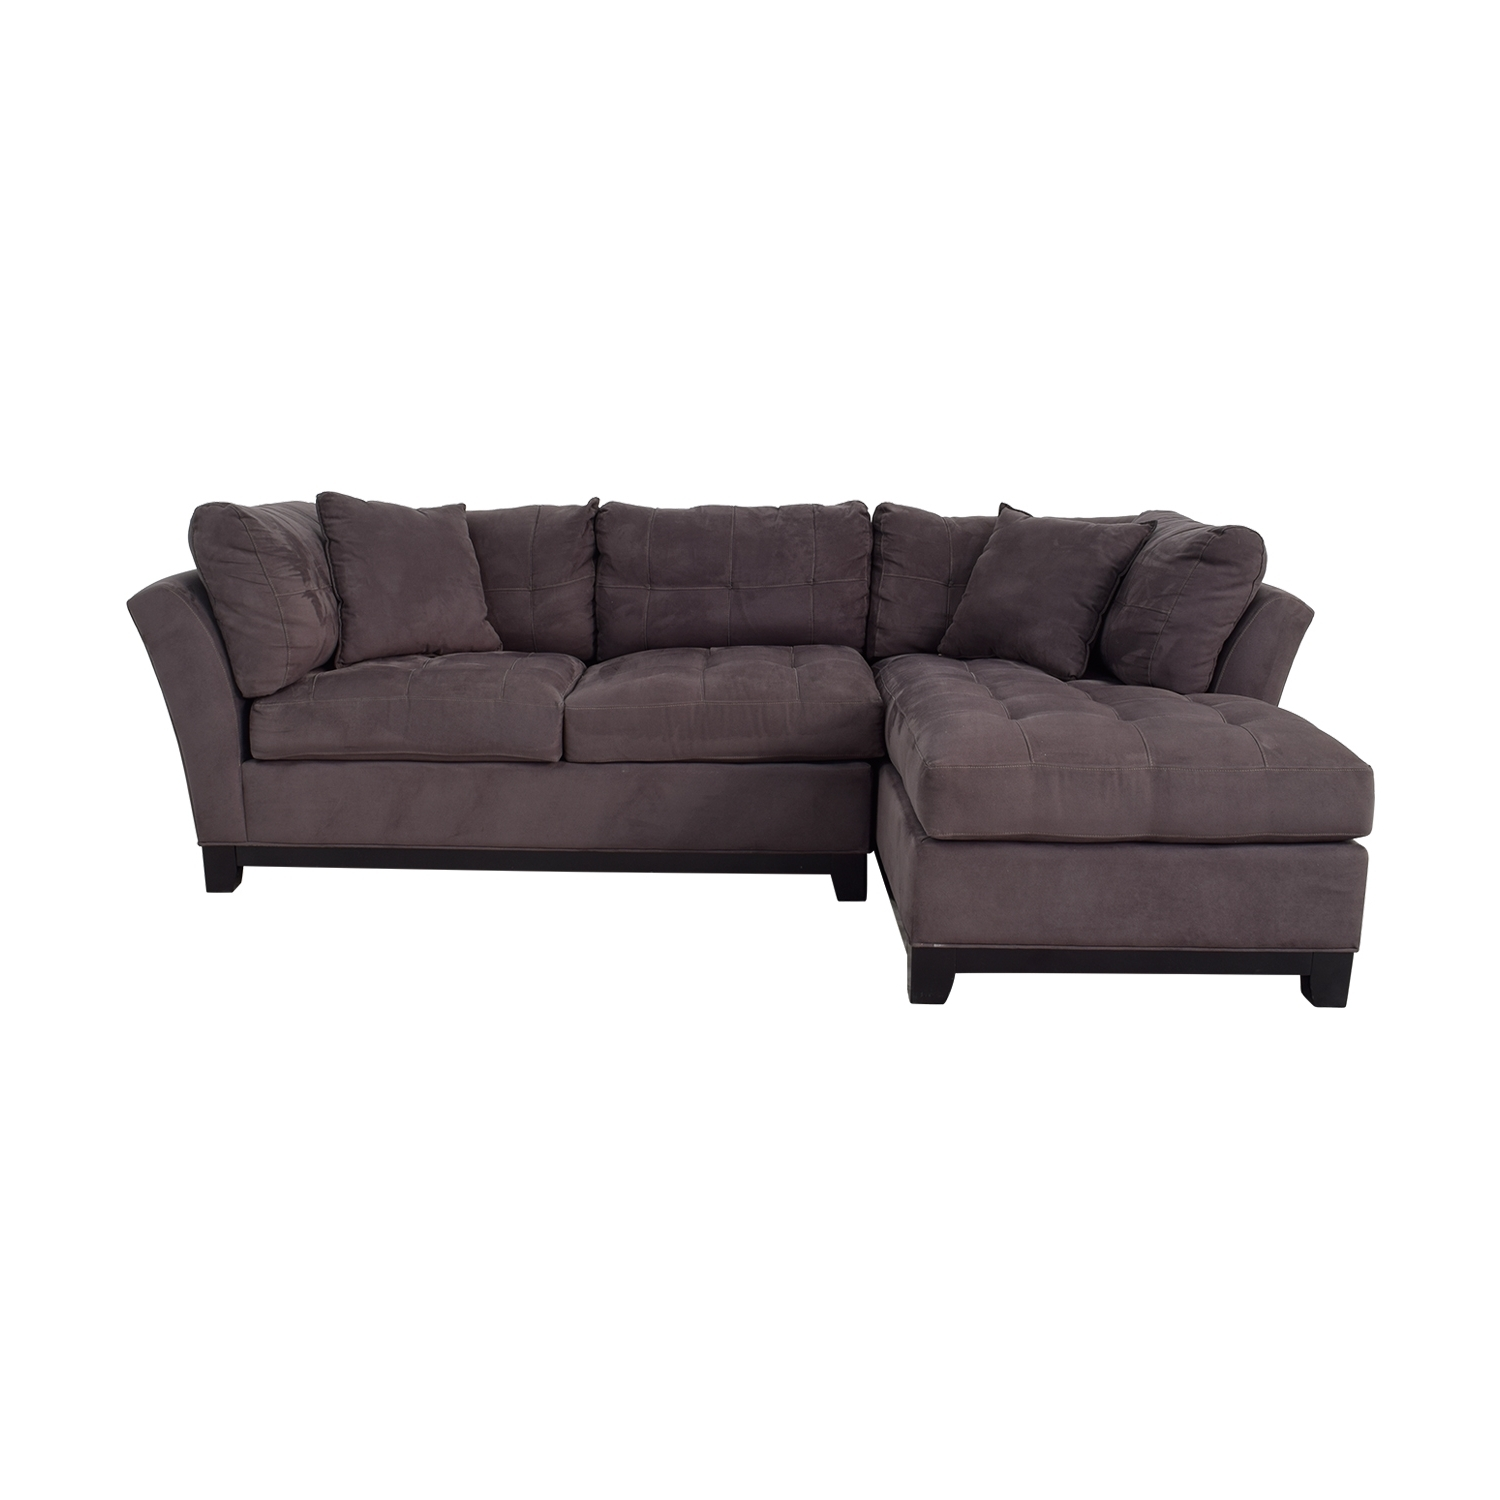 [%64% Off – Raymour & Flanigan Raymour & Flanigan Cindy Crawford With Recent Raymour And Flanigan Sectional Sofas|raymour And Flanigan Sectional Sofas In Preferred 64% Off – Raymour & Flanigan Raymour & Flanigan Cindy Crawford|most Recent Raymour And Flanigan Sectional Sofas For 64% Off – Raymour & Flanigan Raymour & Flanigan Cindy Crawford|most Recently Released 64% Off – Raymour & Flanigan Raymour & Flanigan Cindy Crawford With Regard To Raymour And Flanigan Sectional Sofas%] (View 12 of 20)